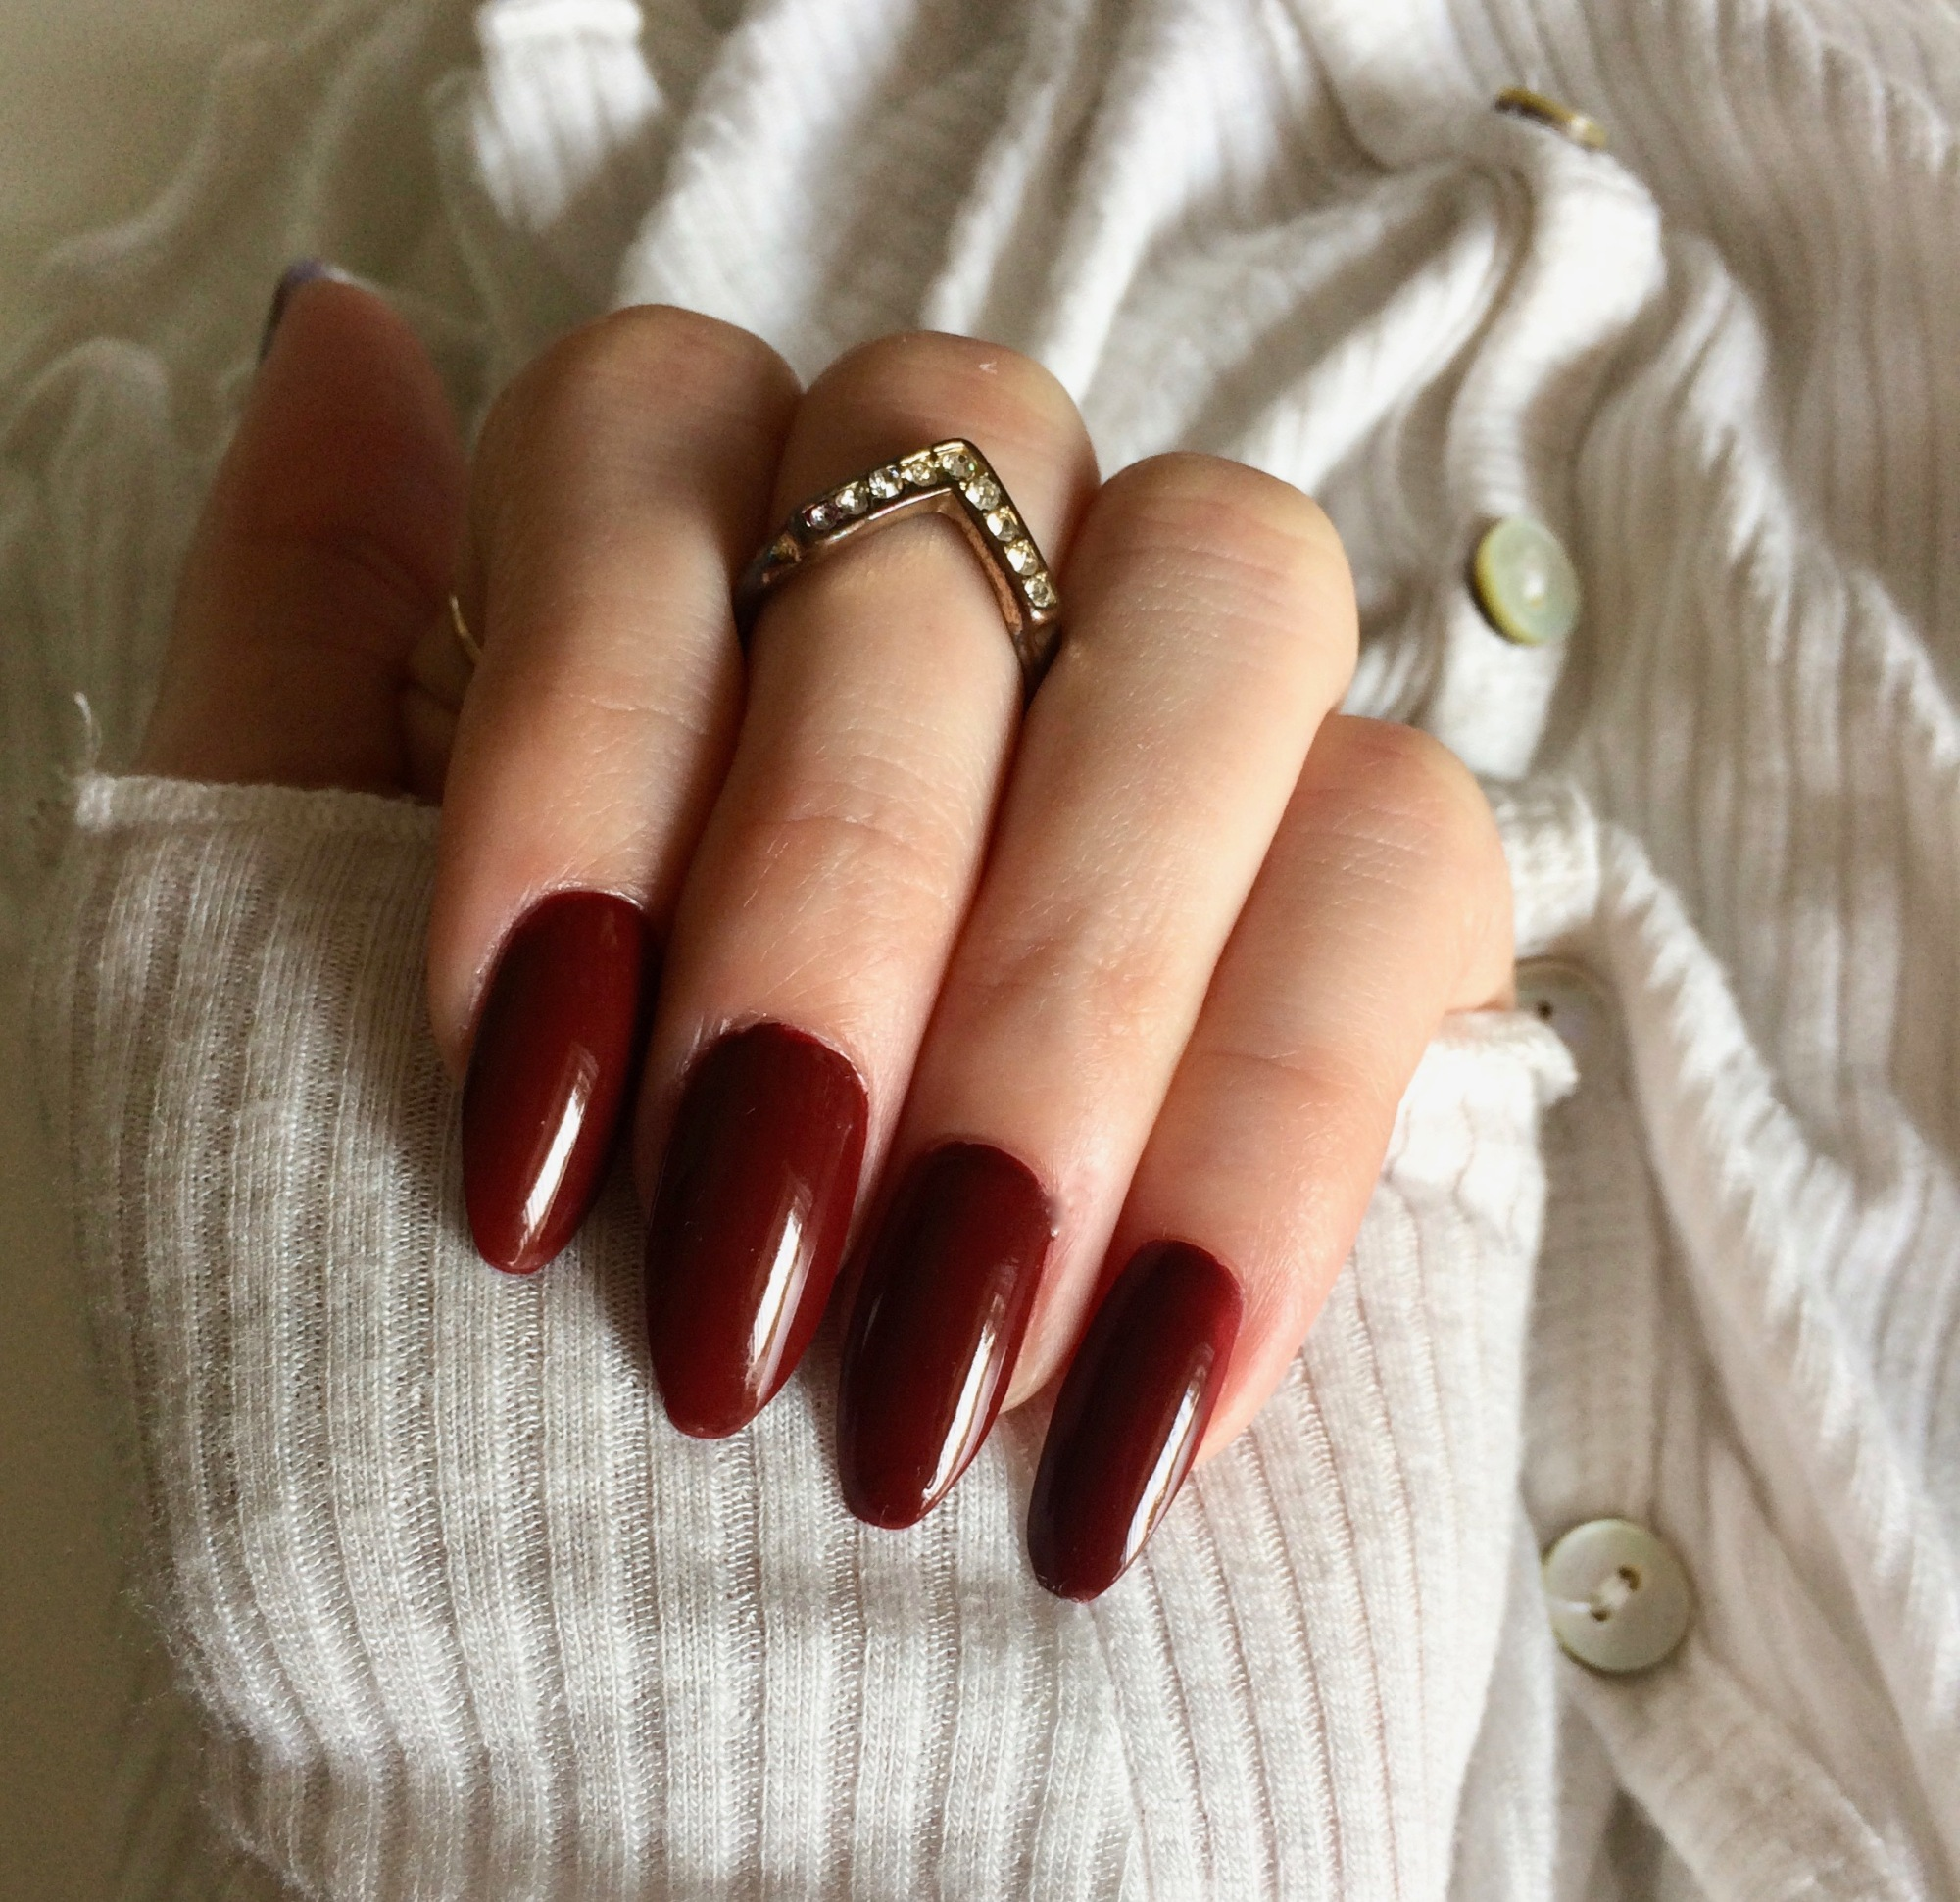 fake nails review stiletto at home manicure